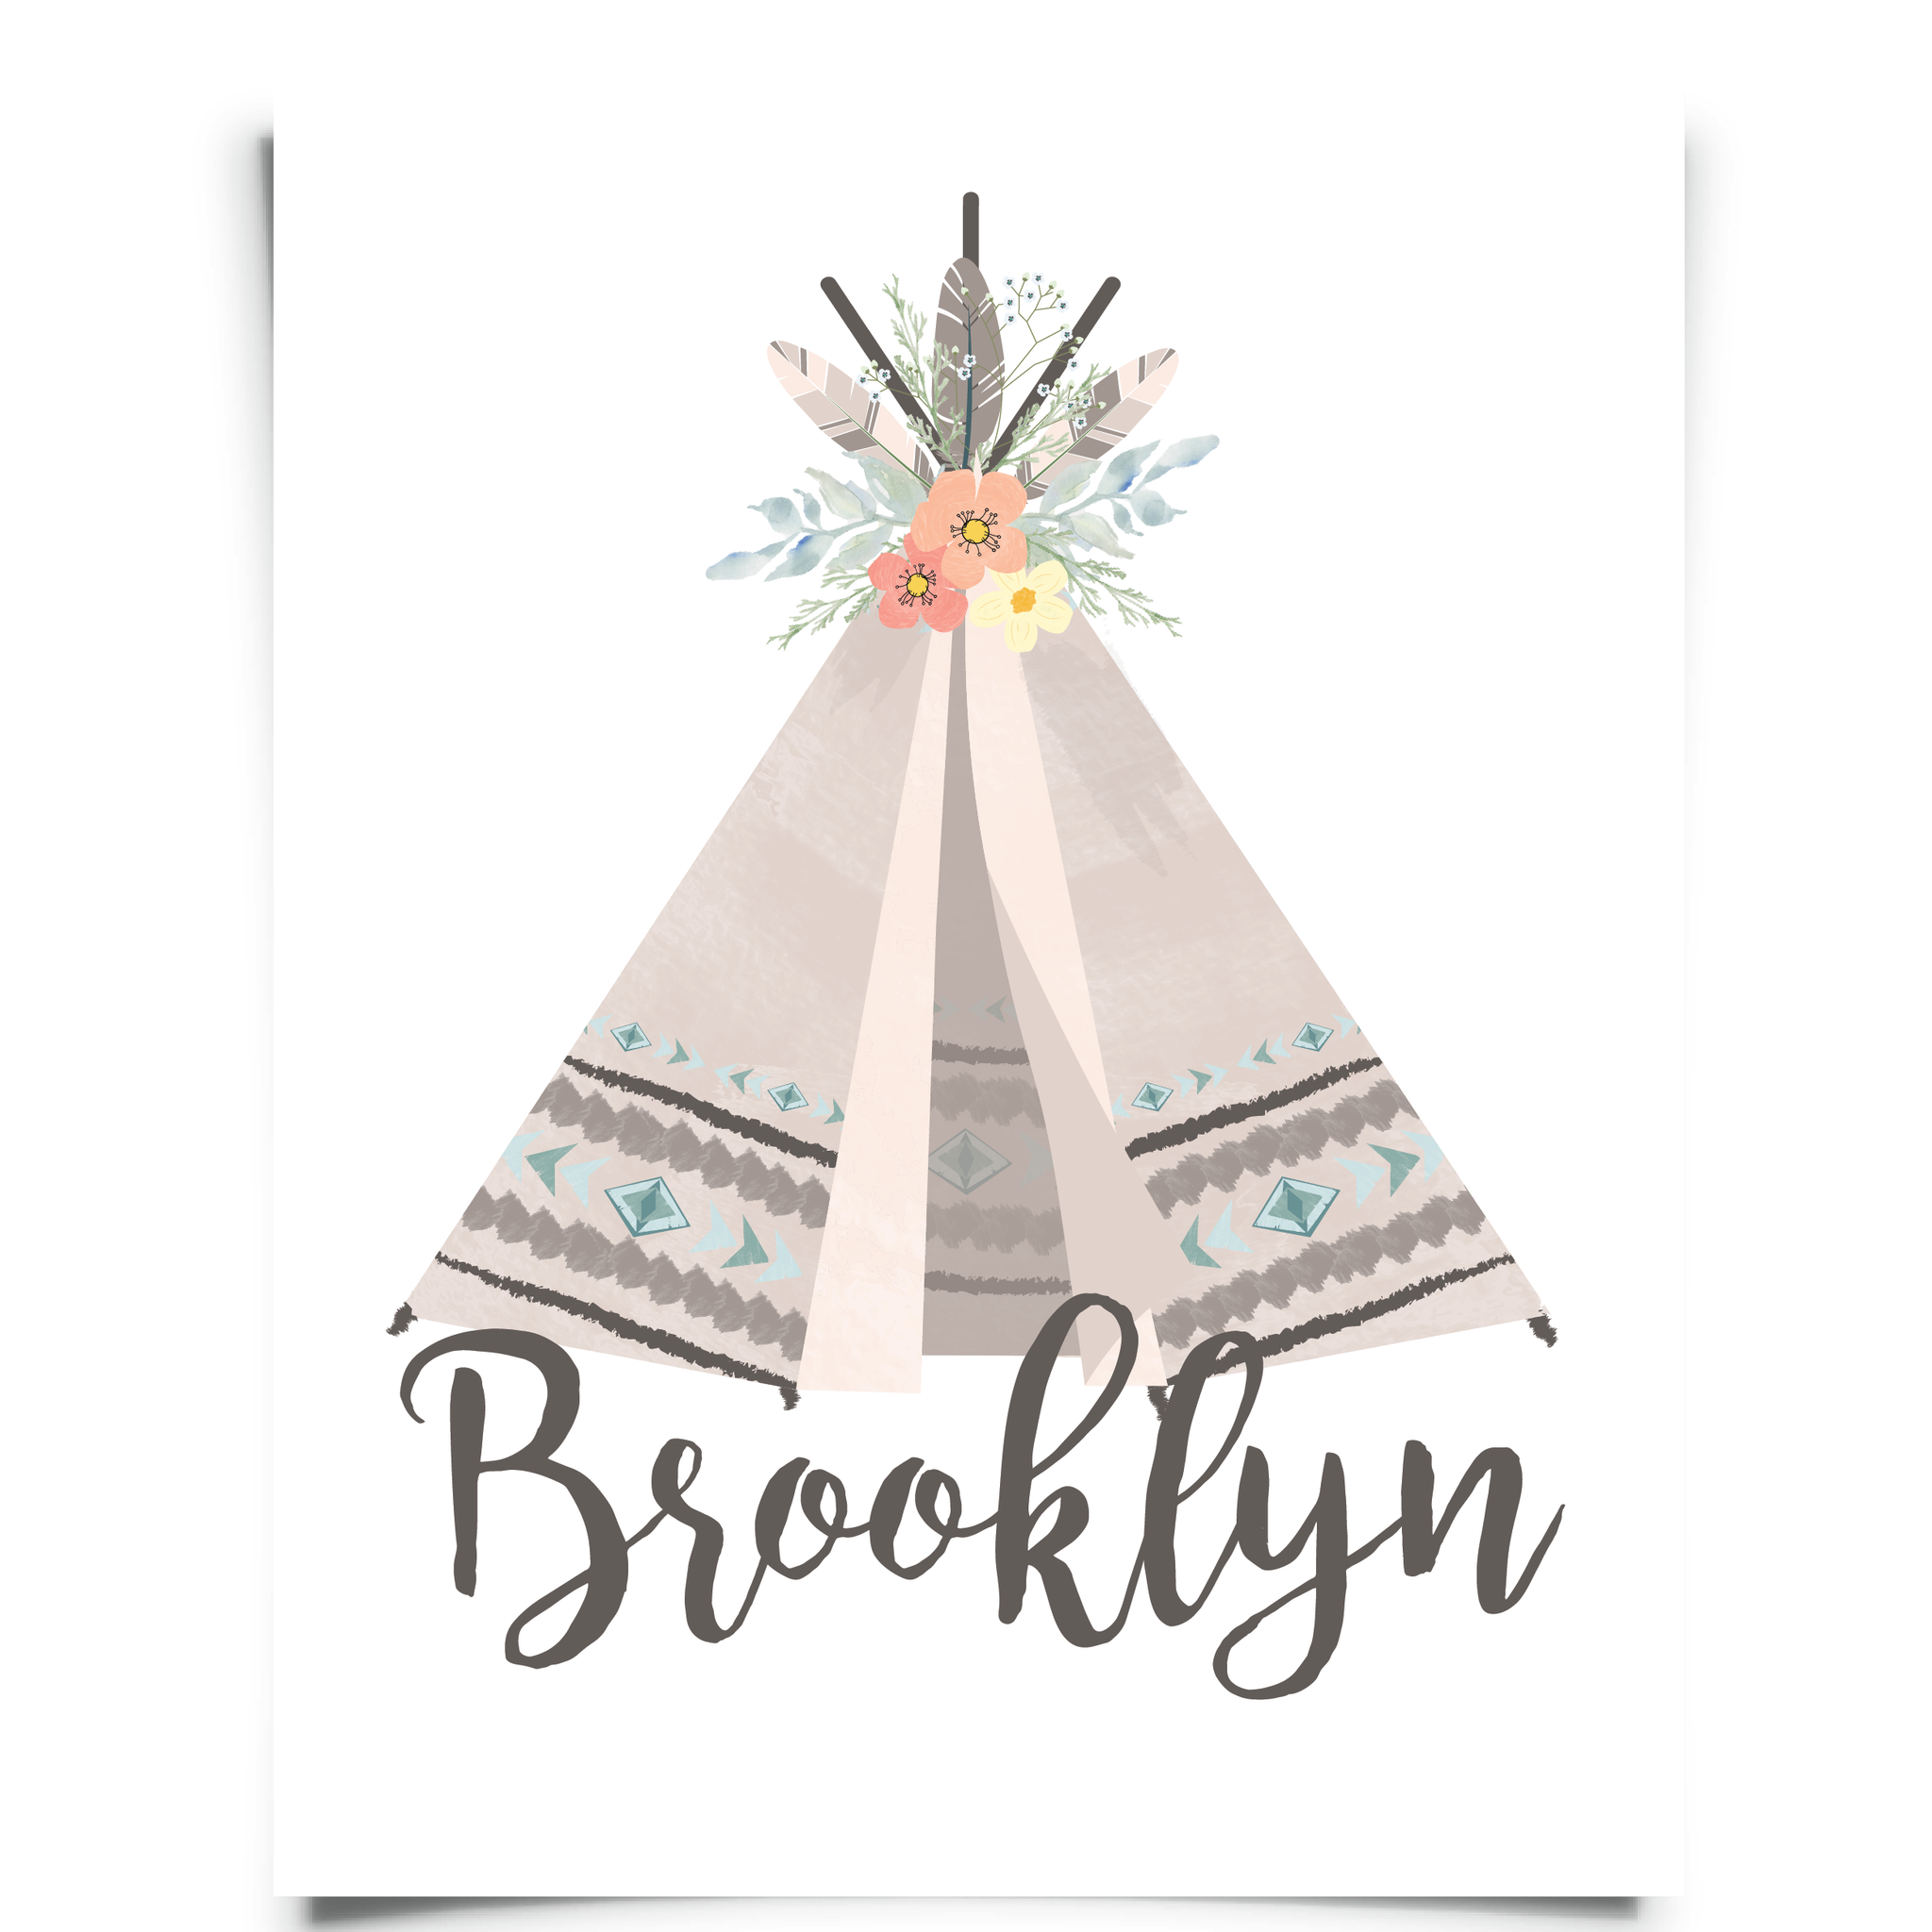 Personalized Teepee Nursery Art Print